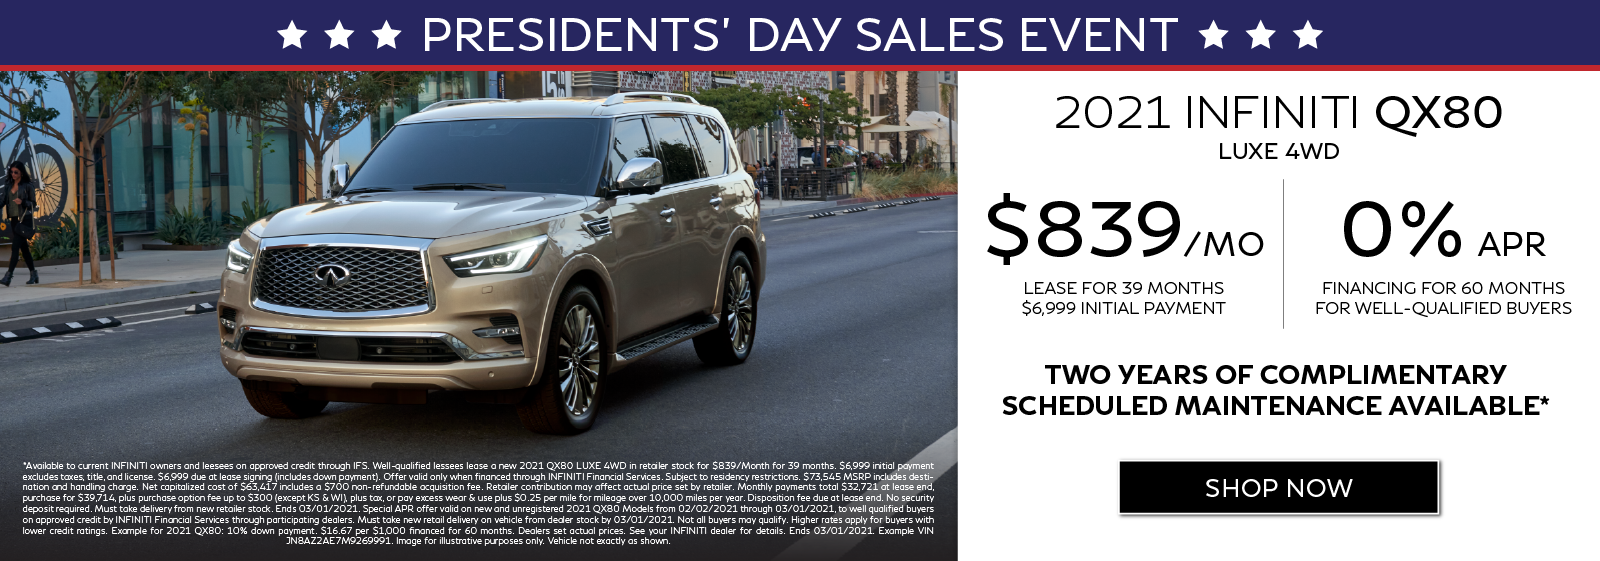 Well-qualified customers can lease a new 2021 QX80 LUXE 4WD for $839 per month for 39 months OR get 0% APR financing for 60 months. Two years of complimentary scheduled maintenance available.* Click to shop now.